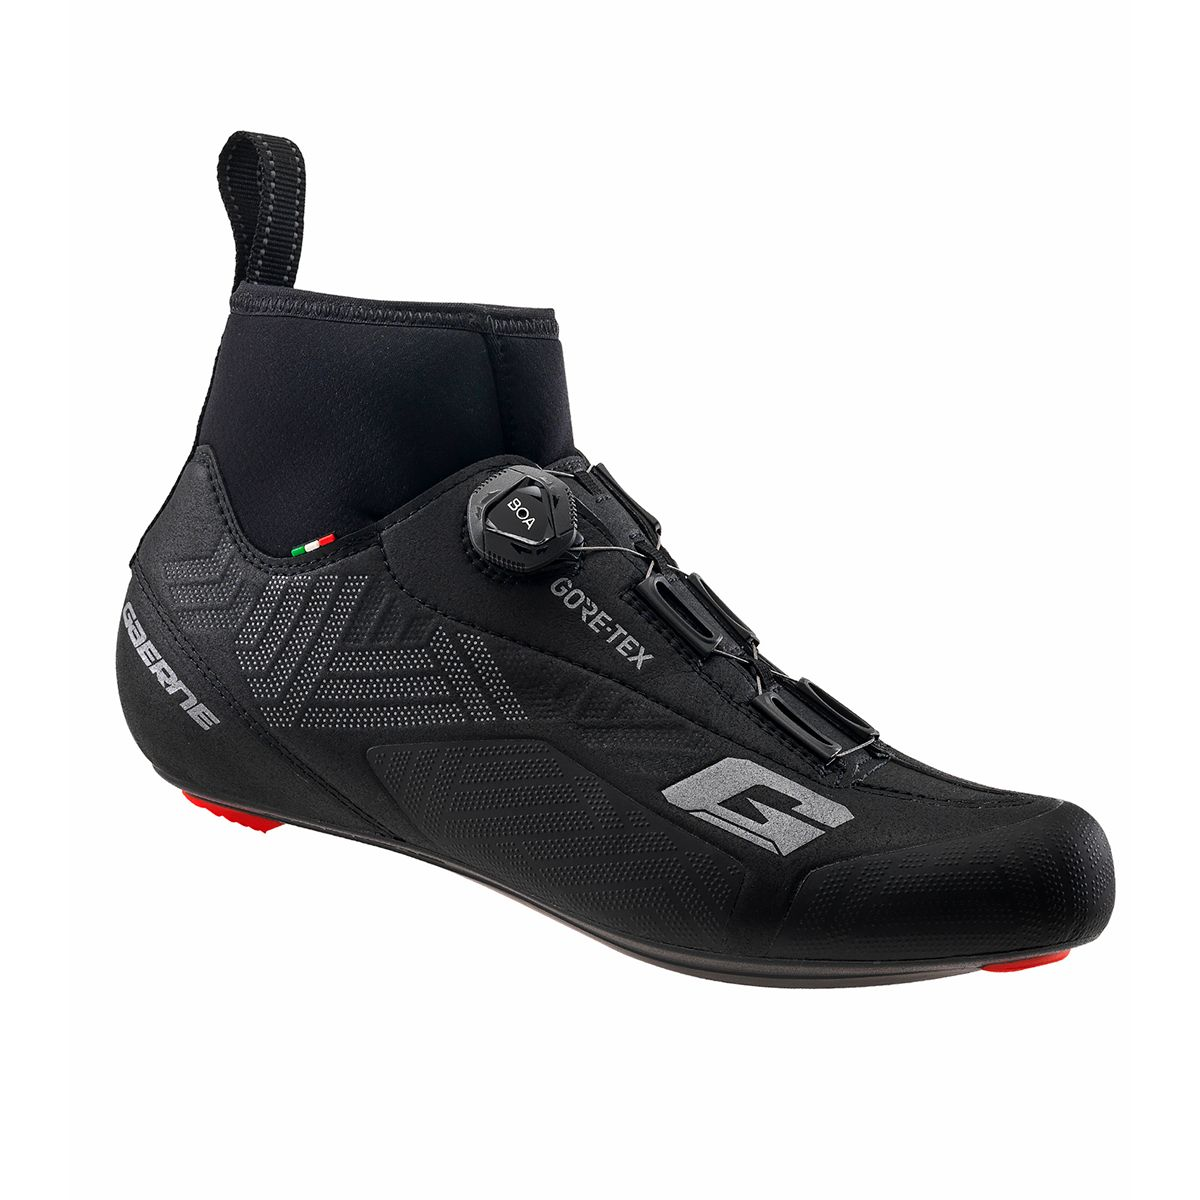 G.ICE-STORM ROAD GORE-TEX Winter Shoes